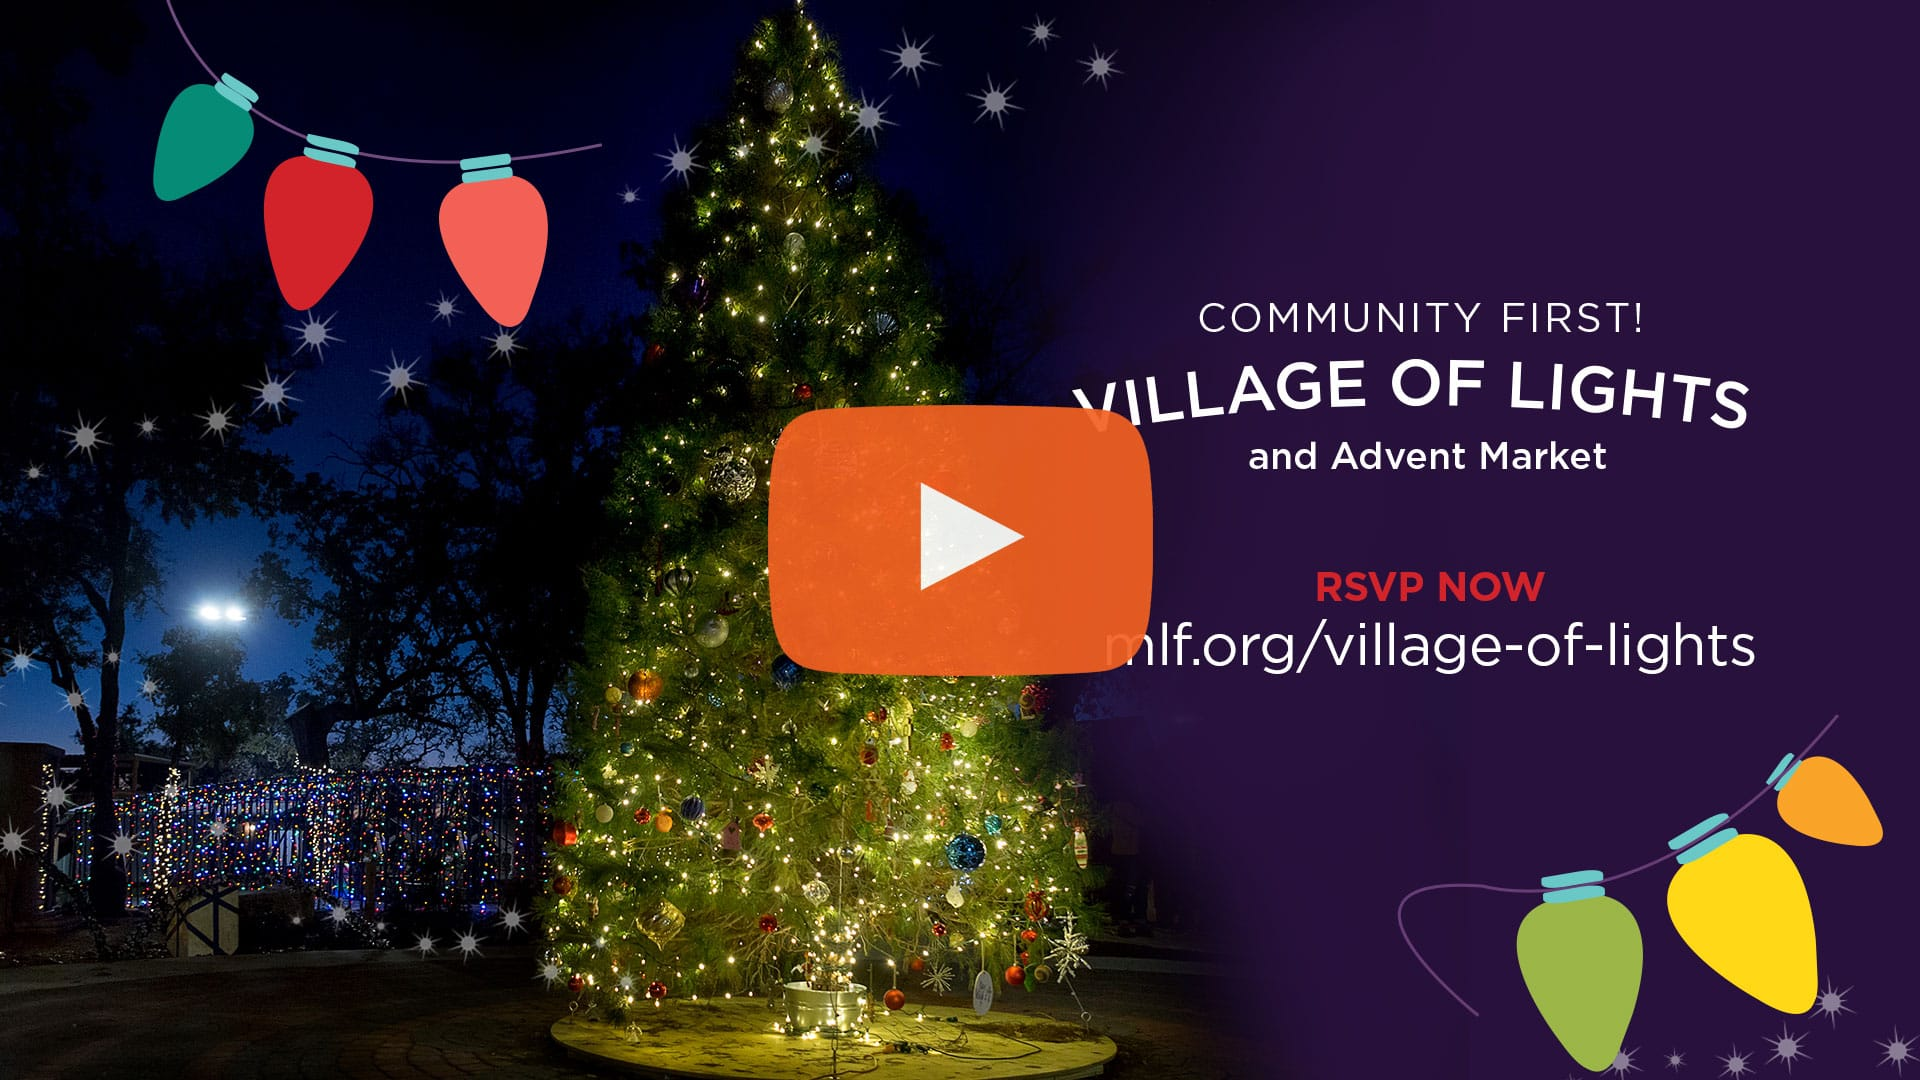 your purchase of gifts and concessions during the event helps our community first neighbors earn a dignified income